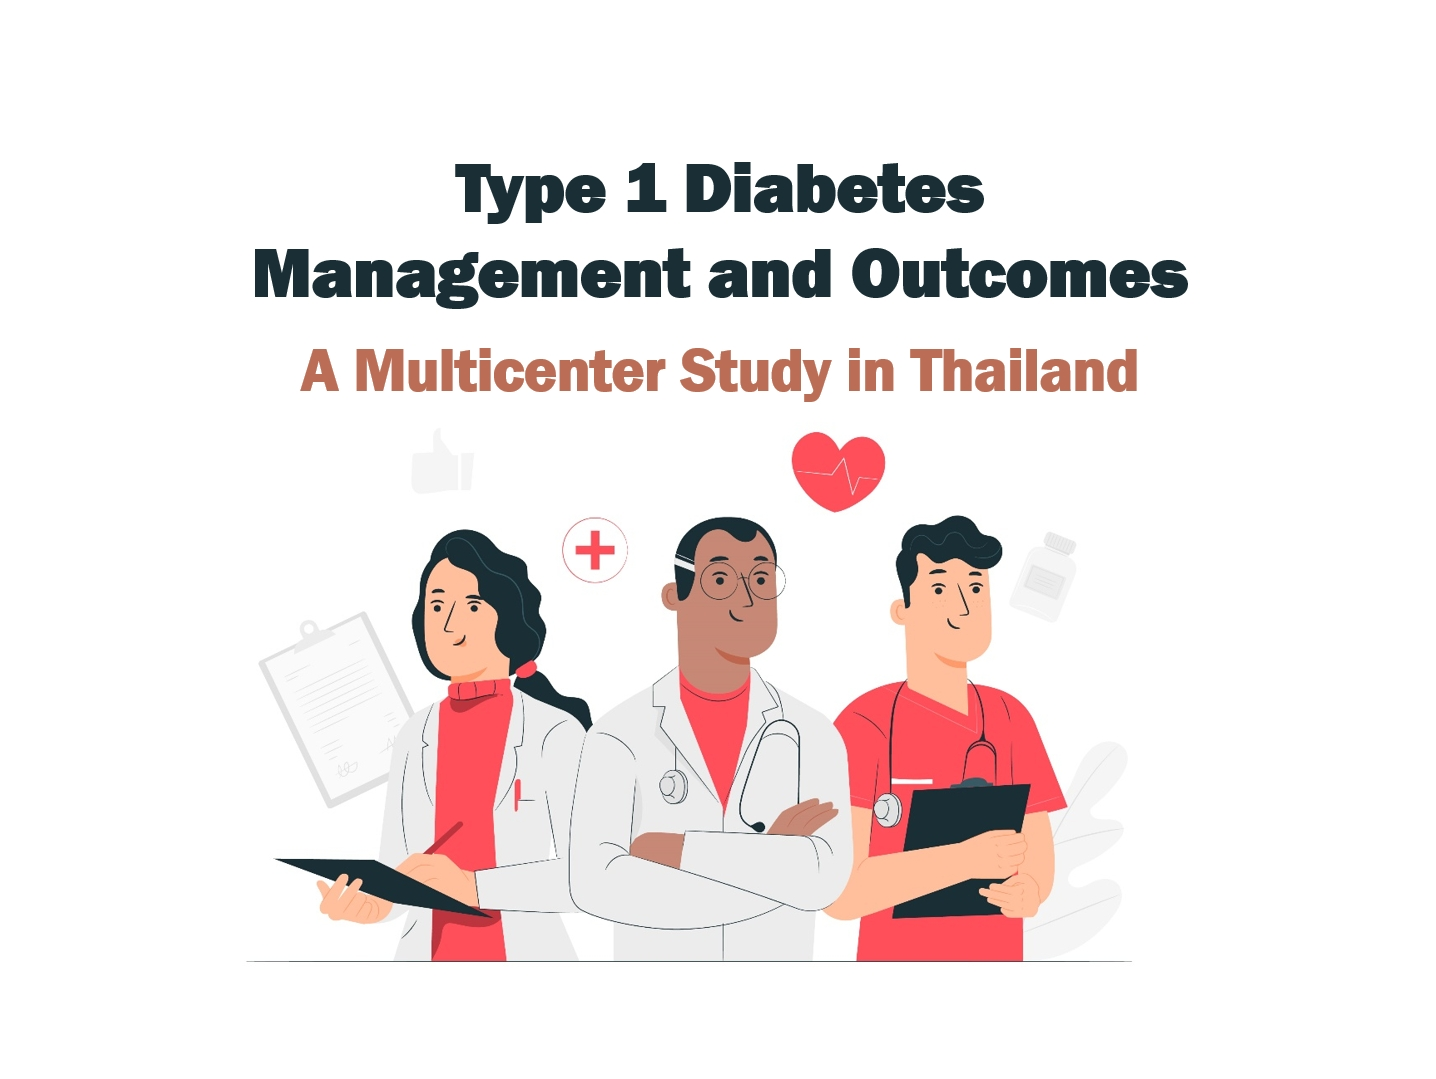 Type 1 diabetes management and outcomes: A multicenter study in Thailand